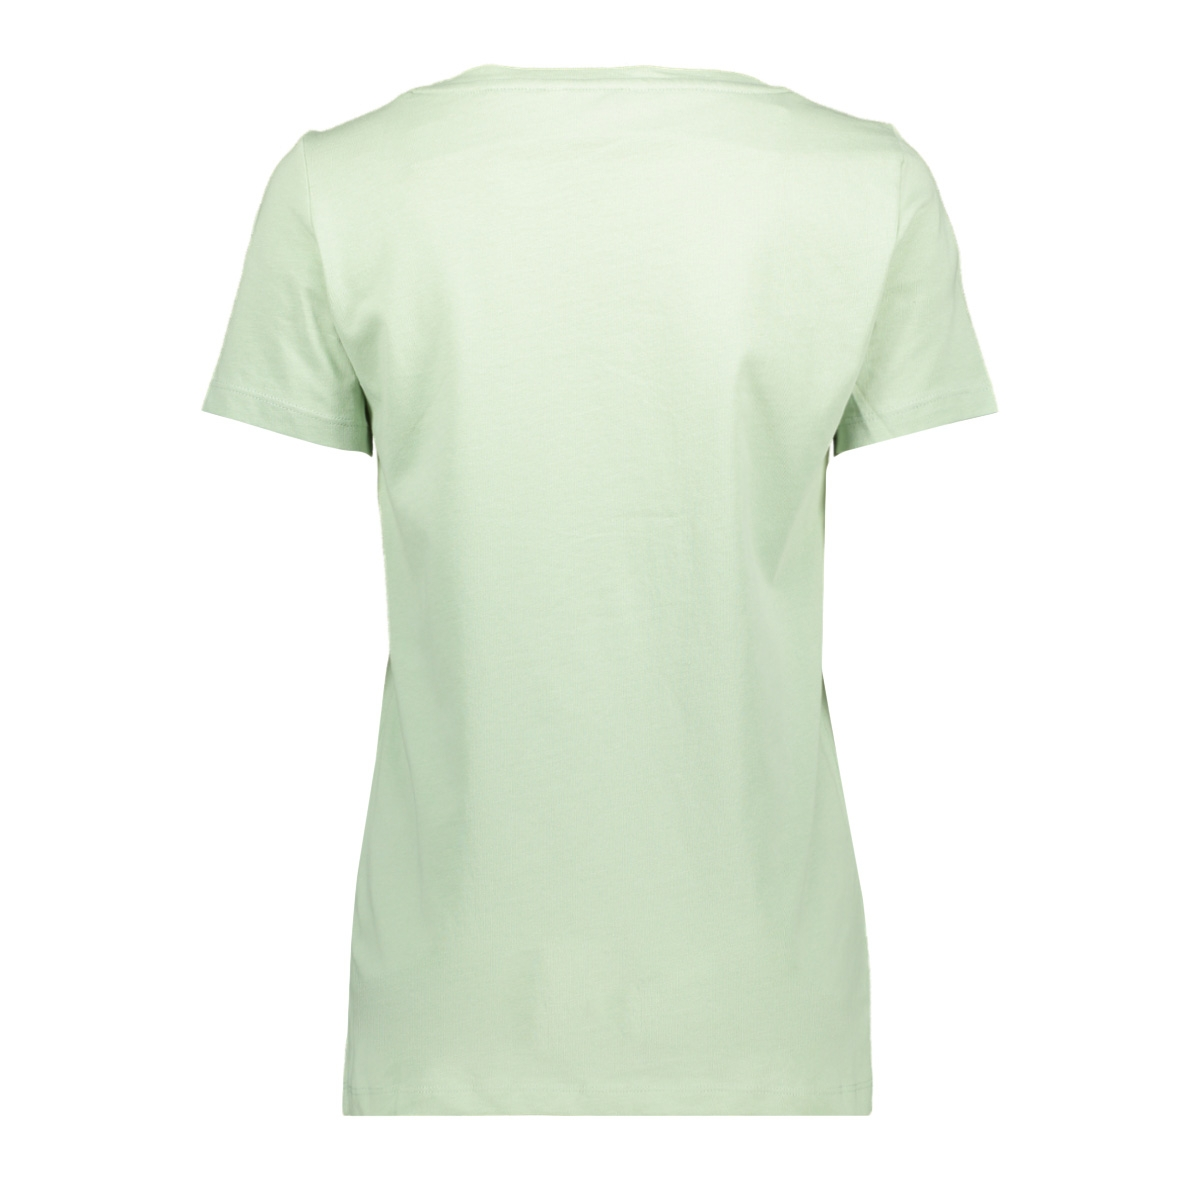 onlkita flower s/s t-shirt jrs 15206100 only t-shirt frosty green/watermelon